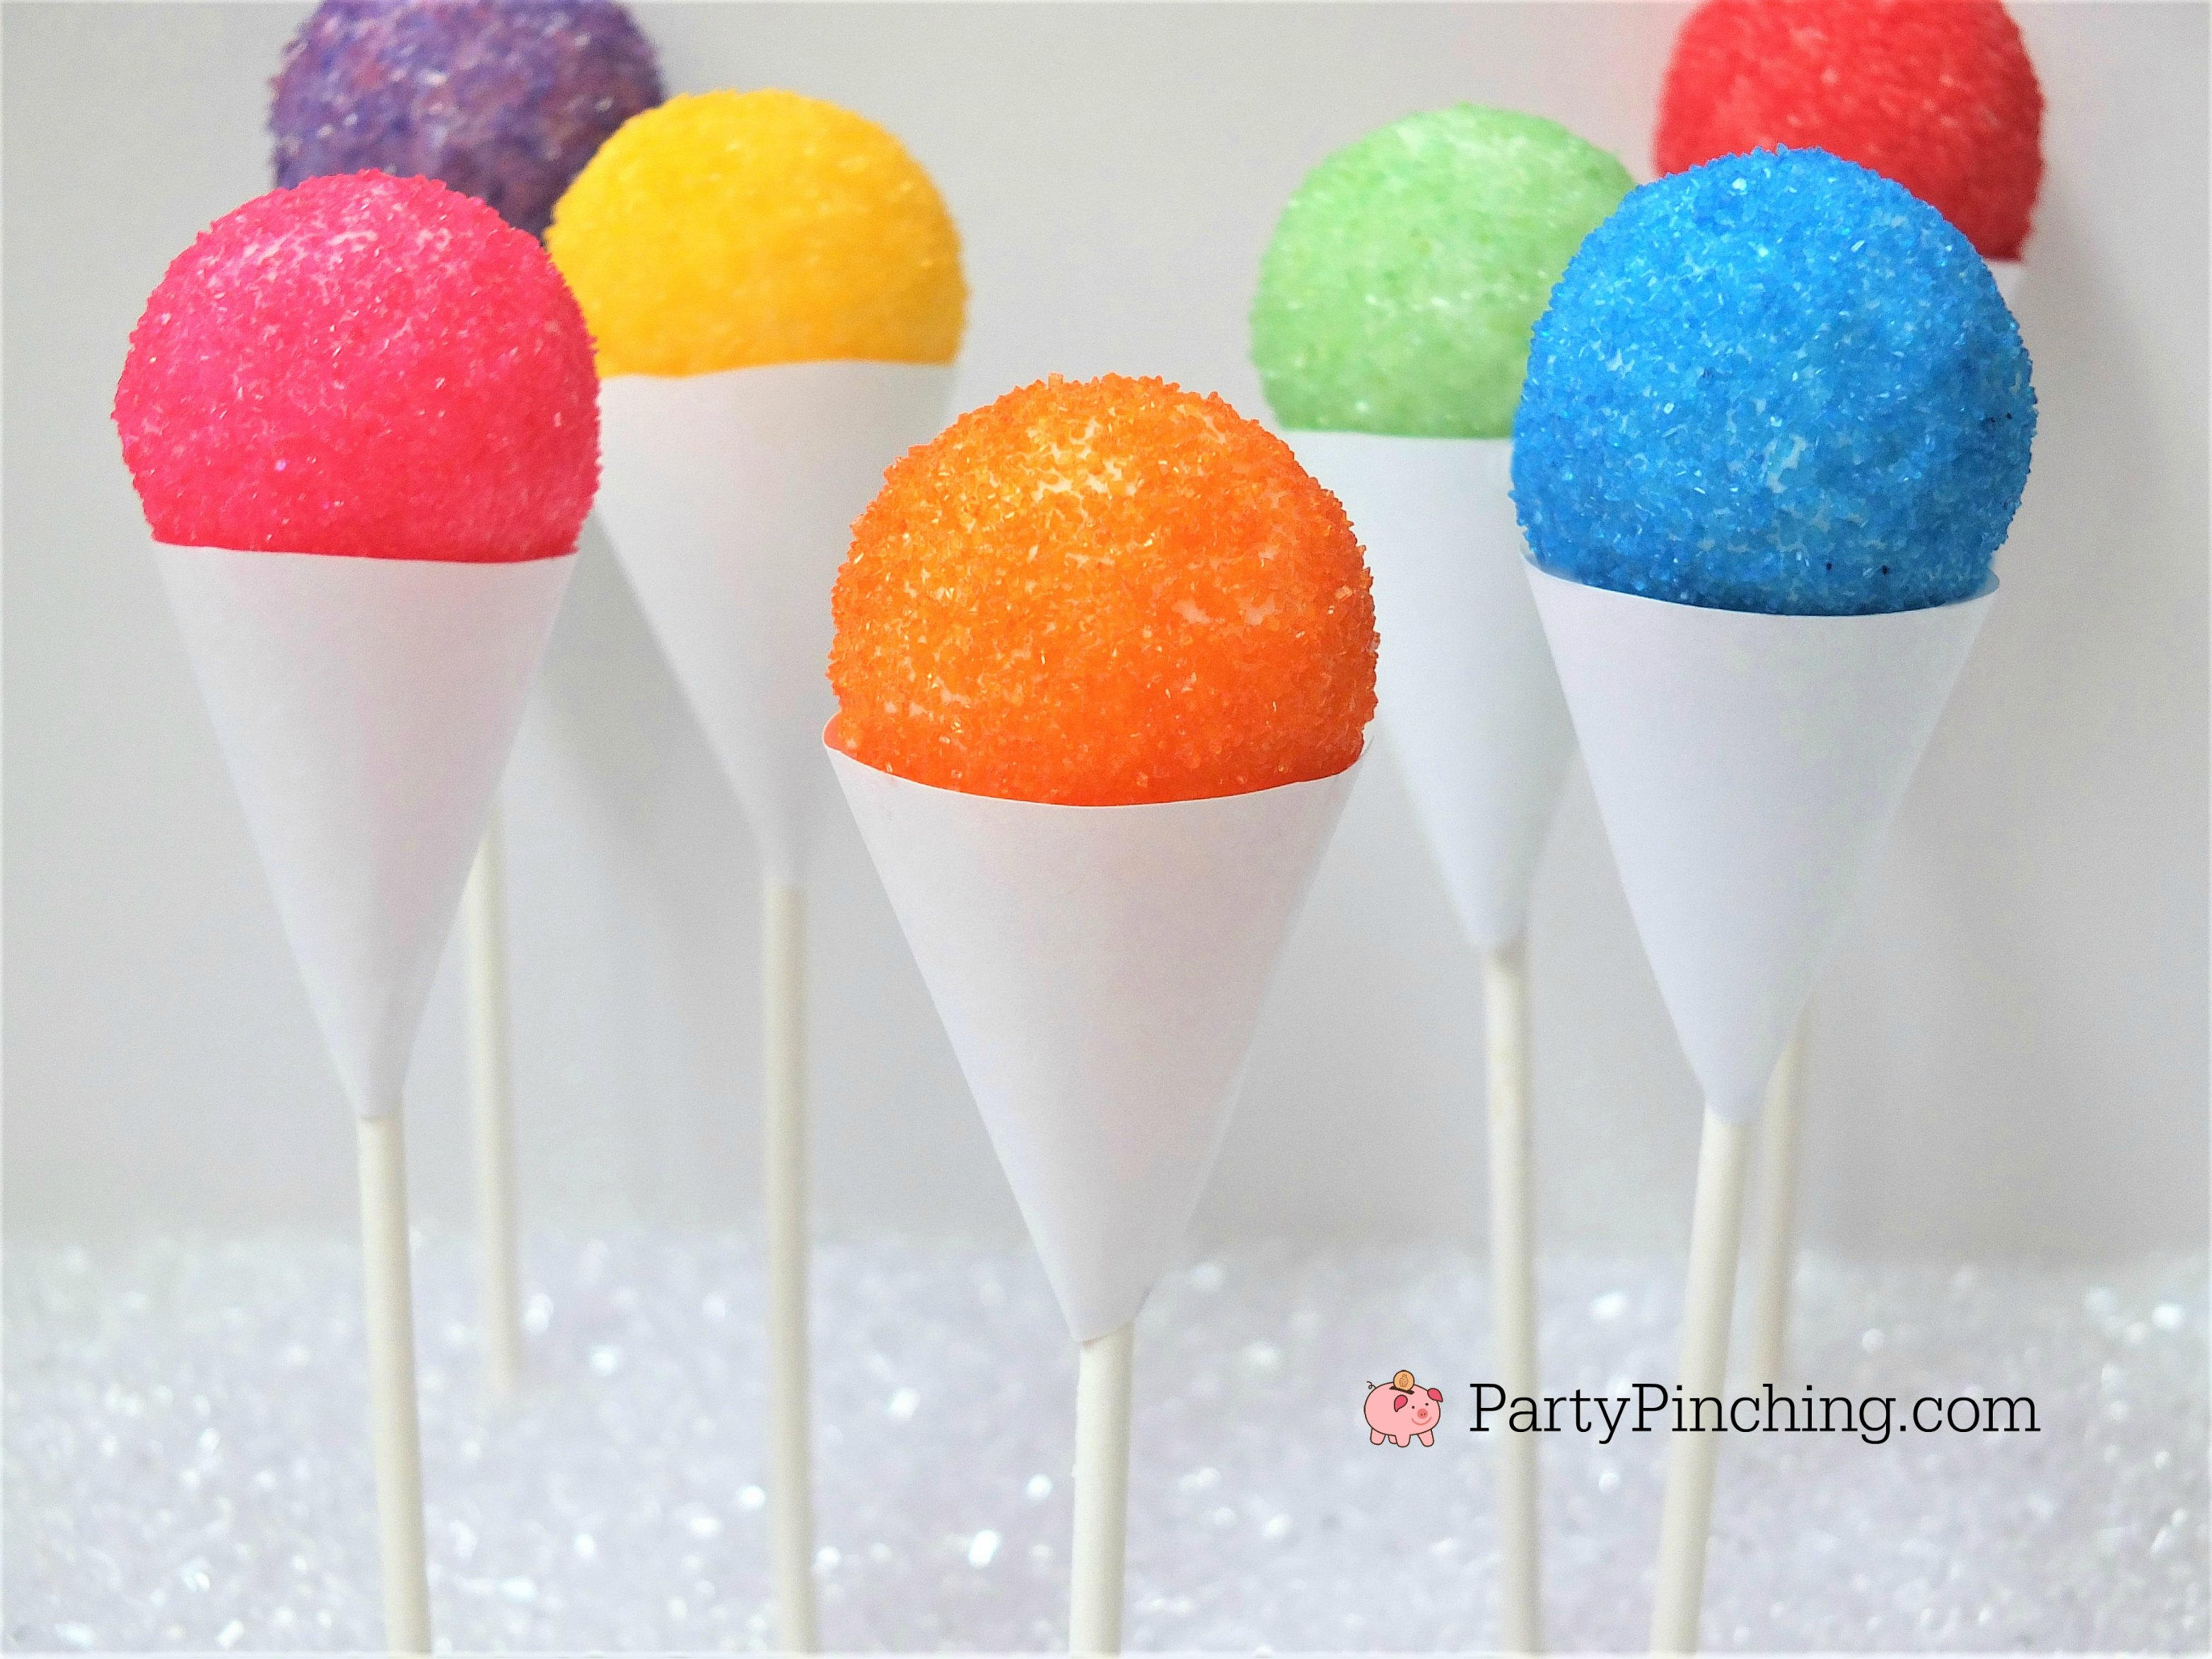 snow cone cake pops, cute summer desserts, sno cone fair cupcake cake pops, easy snow cone treat, summer kid friendly treat, summer theme party ideas, no bake cake pops, partypinching.com